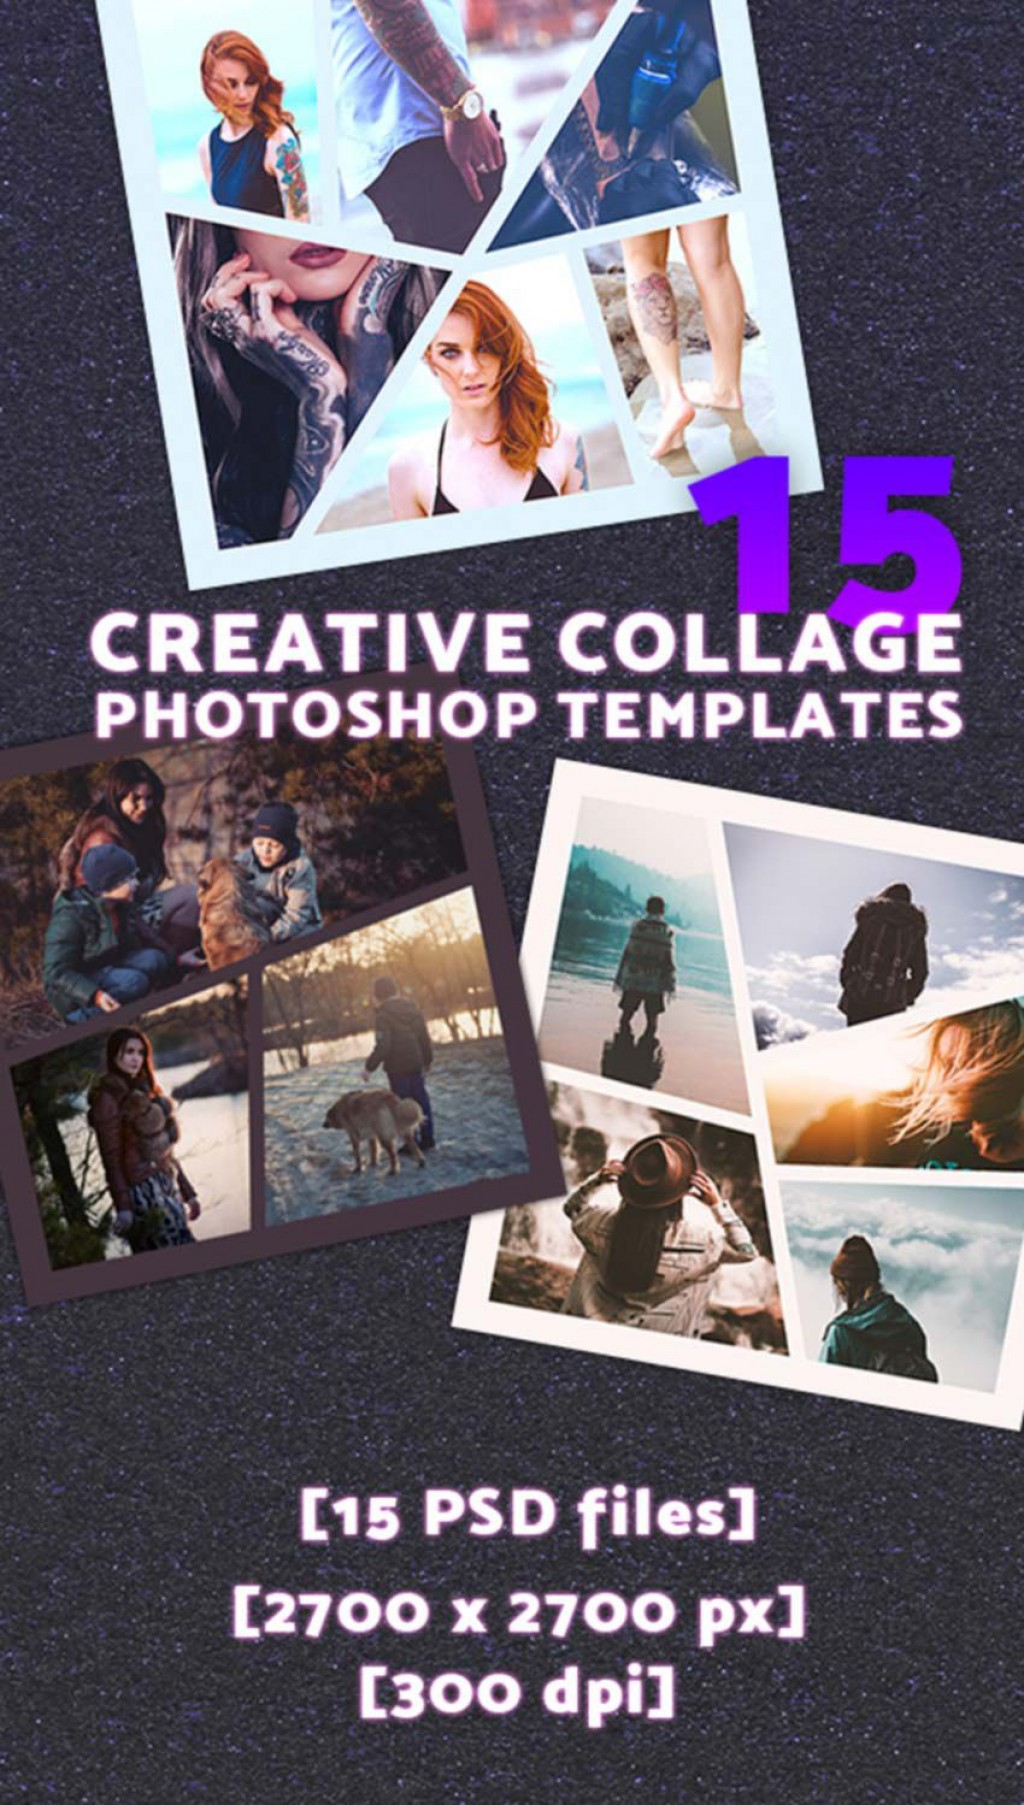 010 Unusual Free Photoshop Collage Template Design  Templates Psd Download Photo For ElementLarge